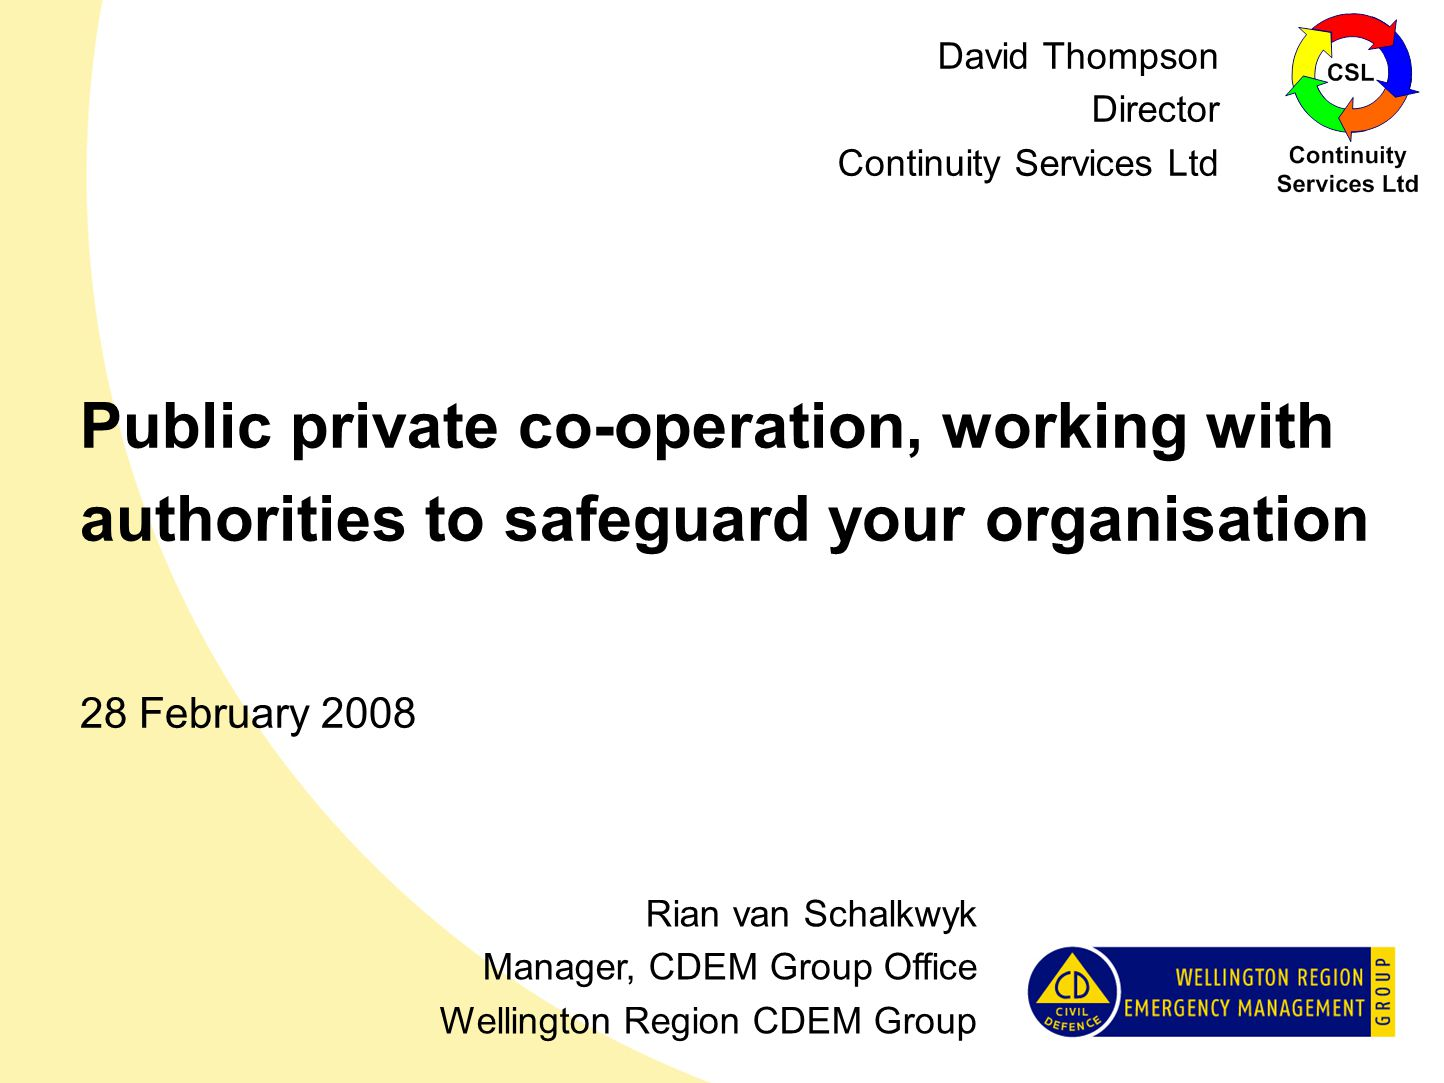 Public private co-operation, working with authorities to safeguard your organisation 28 February 2008 Rian van Schalkwyk Manager, CDEM Group Office Wellington Region CDEM Group David Thompson Director Continuity Services Ltd